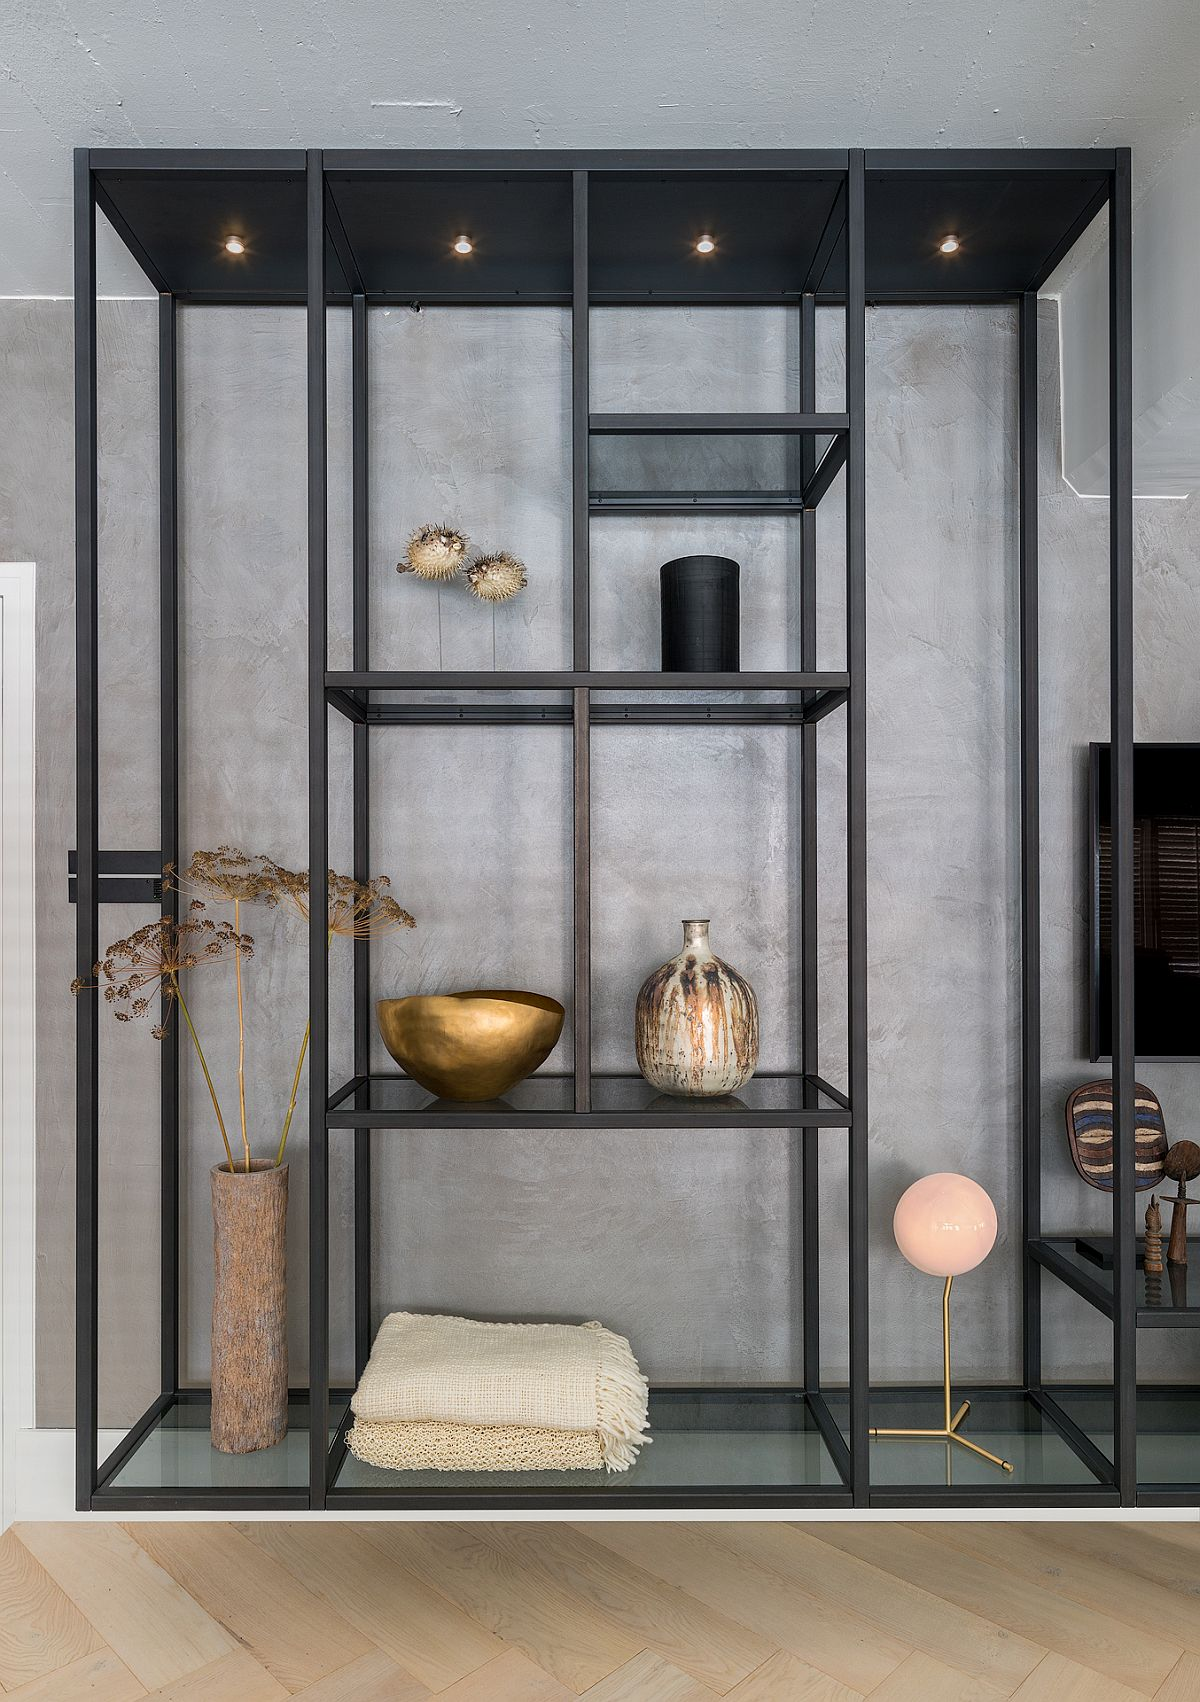 Tall industrial shelves were crafted to fit in with the scale and style of the contemporary loft